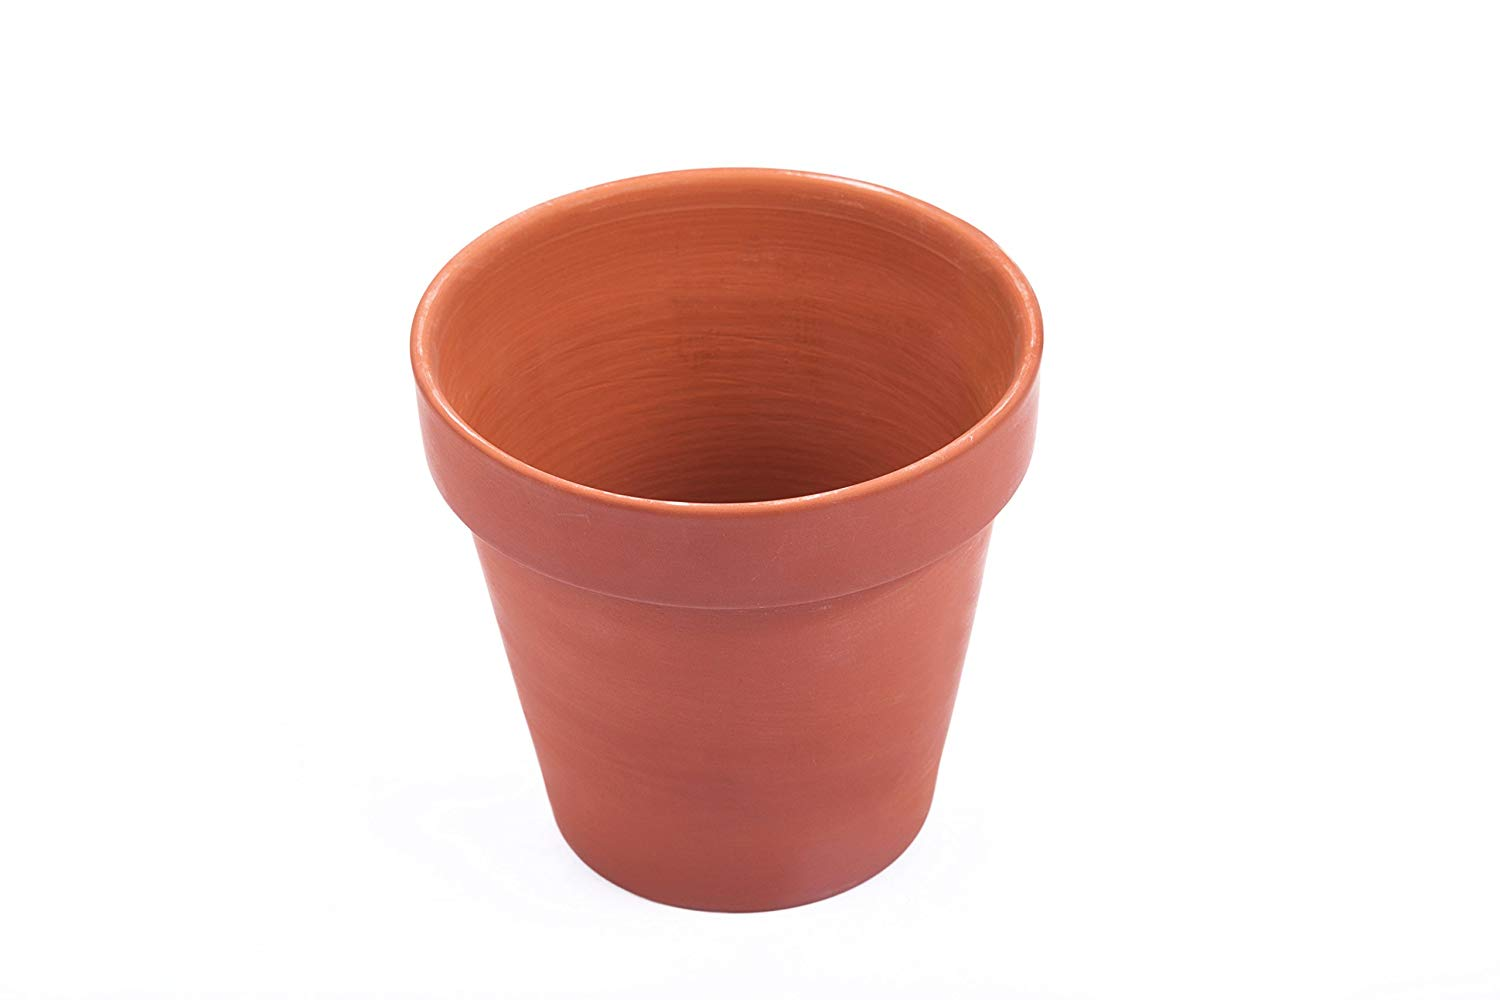 Ceramic Pottery For Plants Mr Garden Clay Terracotta Pot Clay Ceramic Pottery Planter